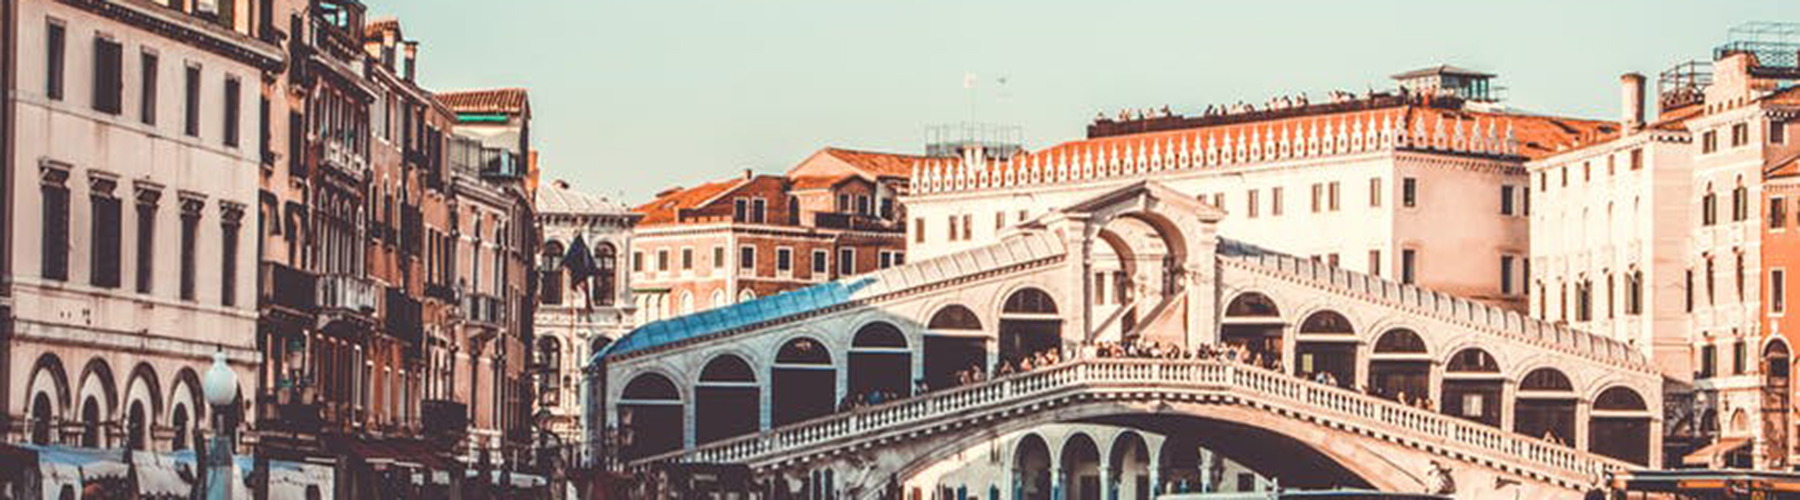 Venice – Hostels close to Rialto Bridge. Maps for Venice, Photos and Reviews for each hostel in Venice.